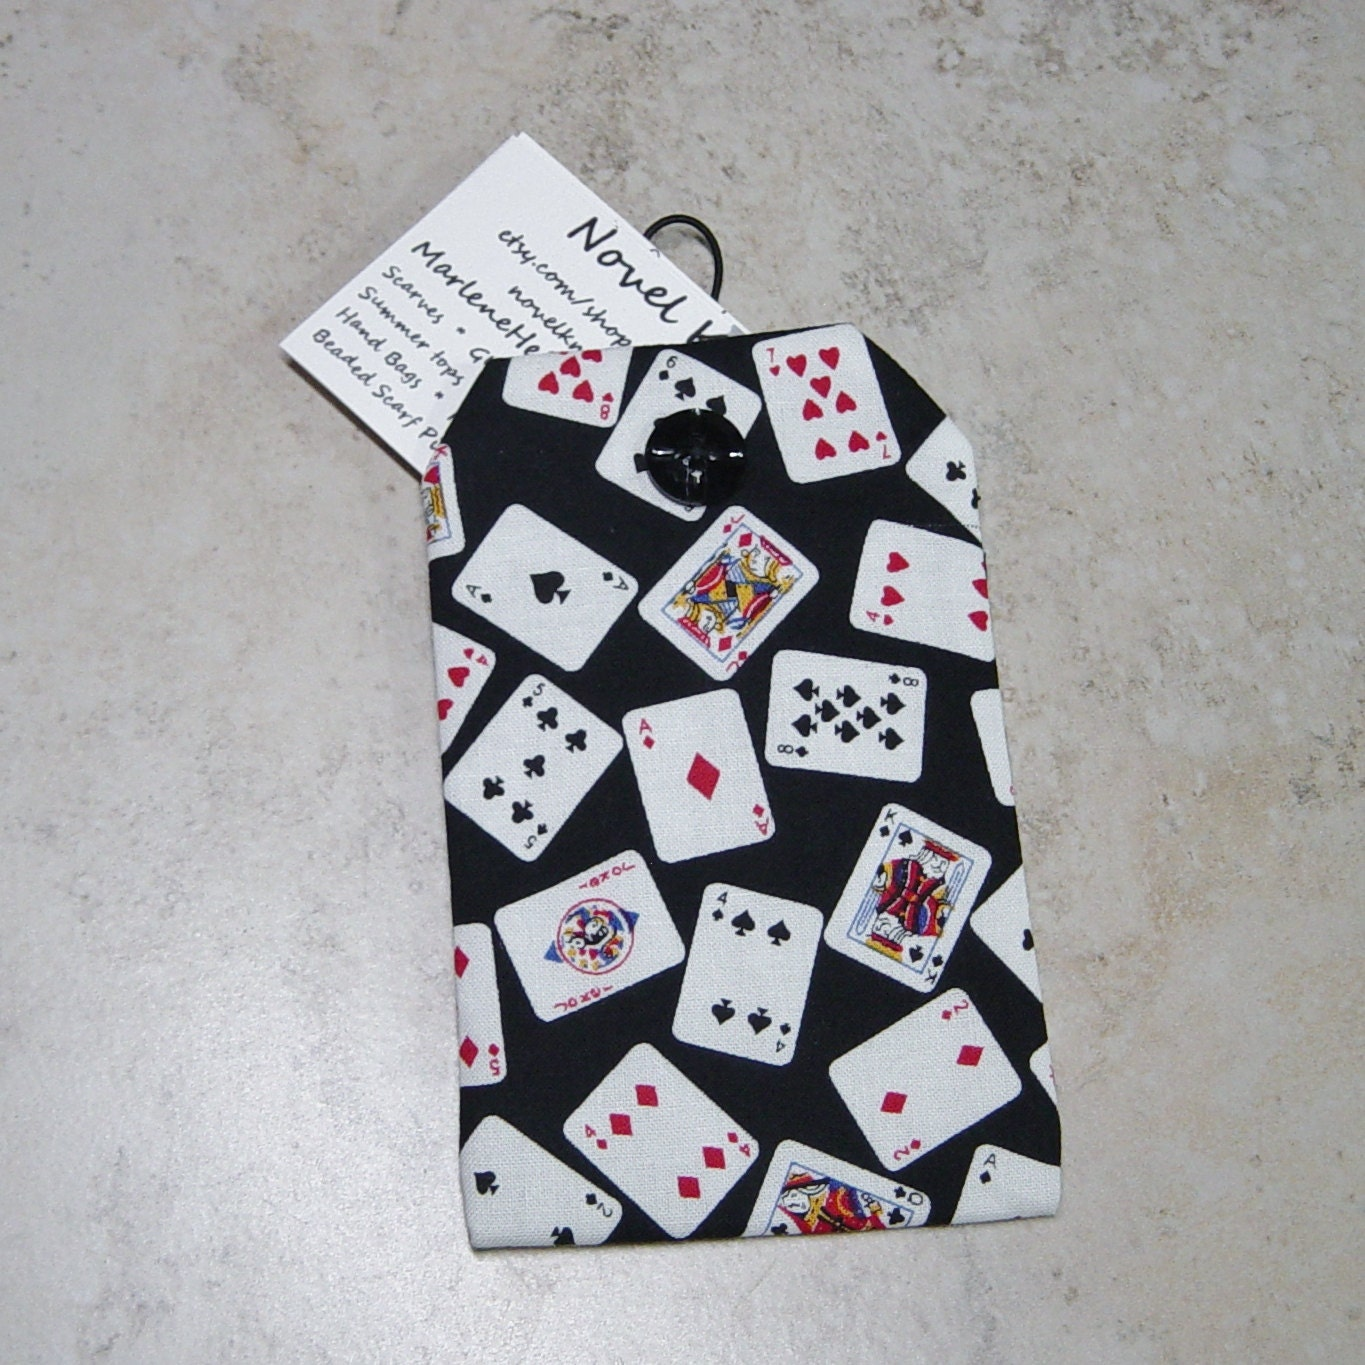 Business card caseplaying cards fabric casecredit card purse business card caseplaying cards fabric casecredit card purse gamblers gift colourmoves